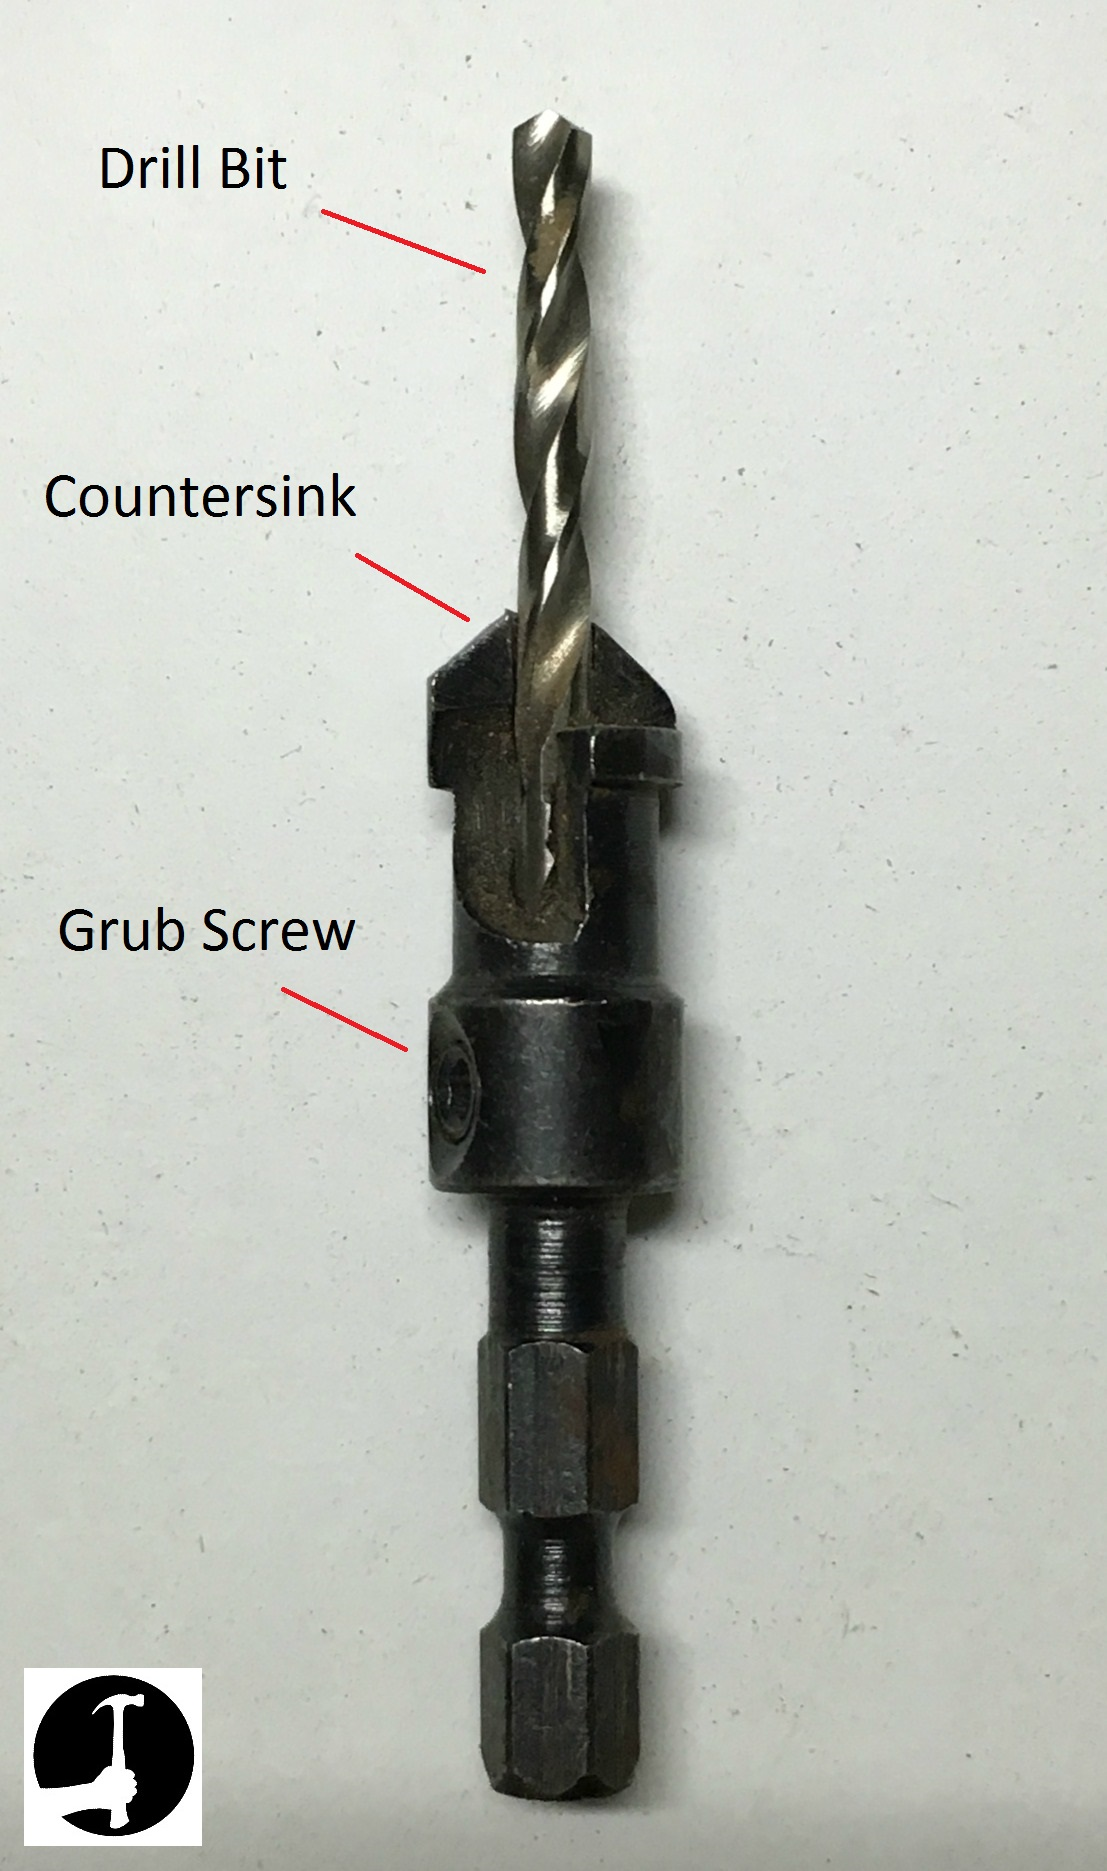 Drill and countersink bit